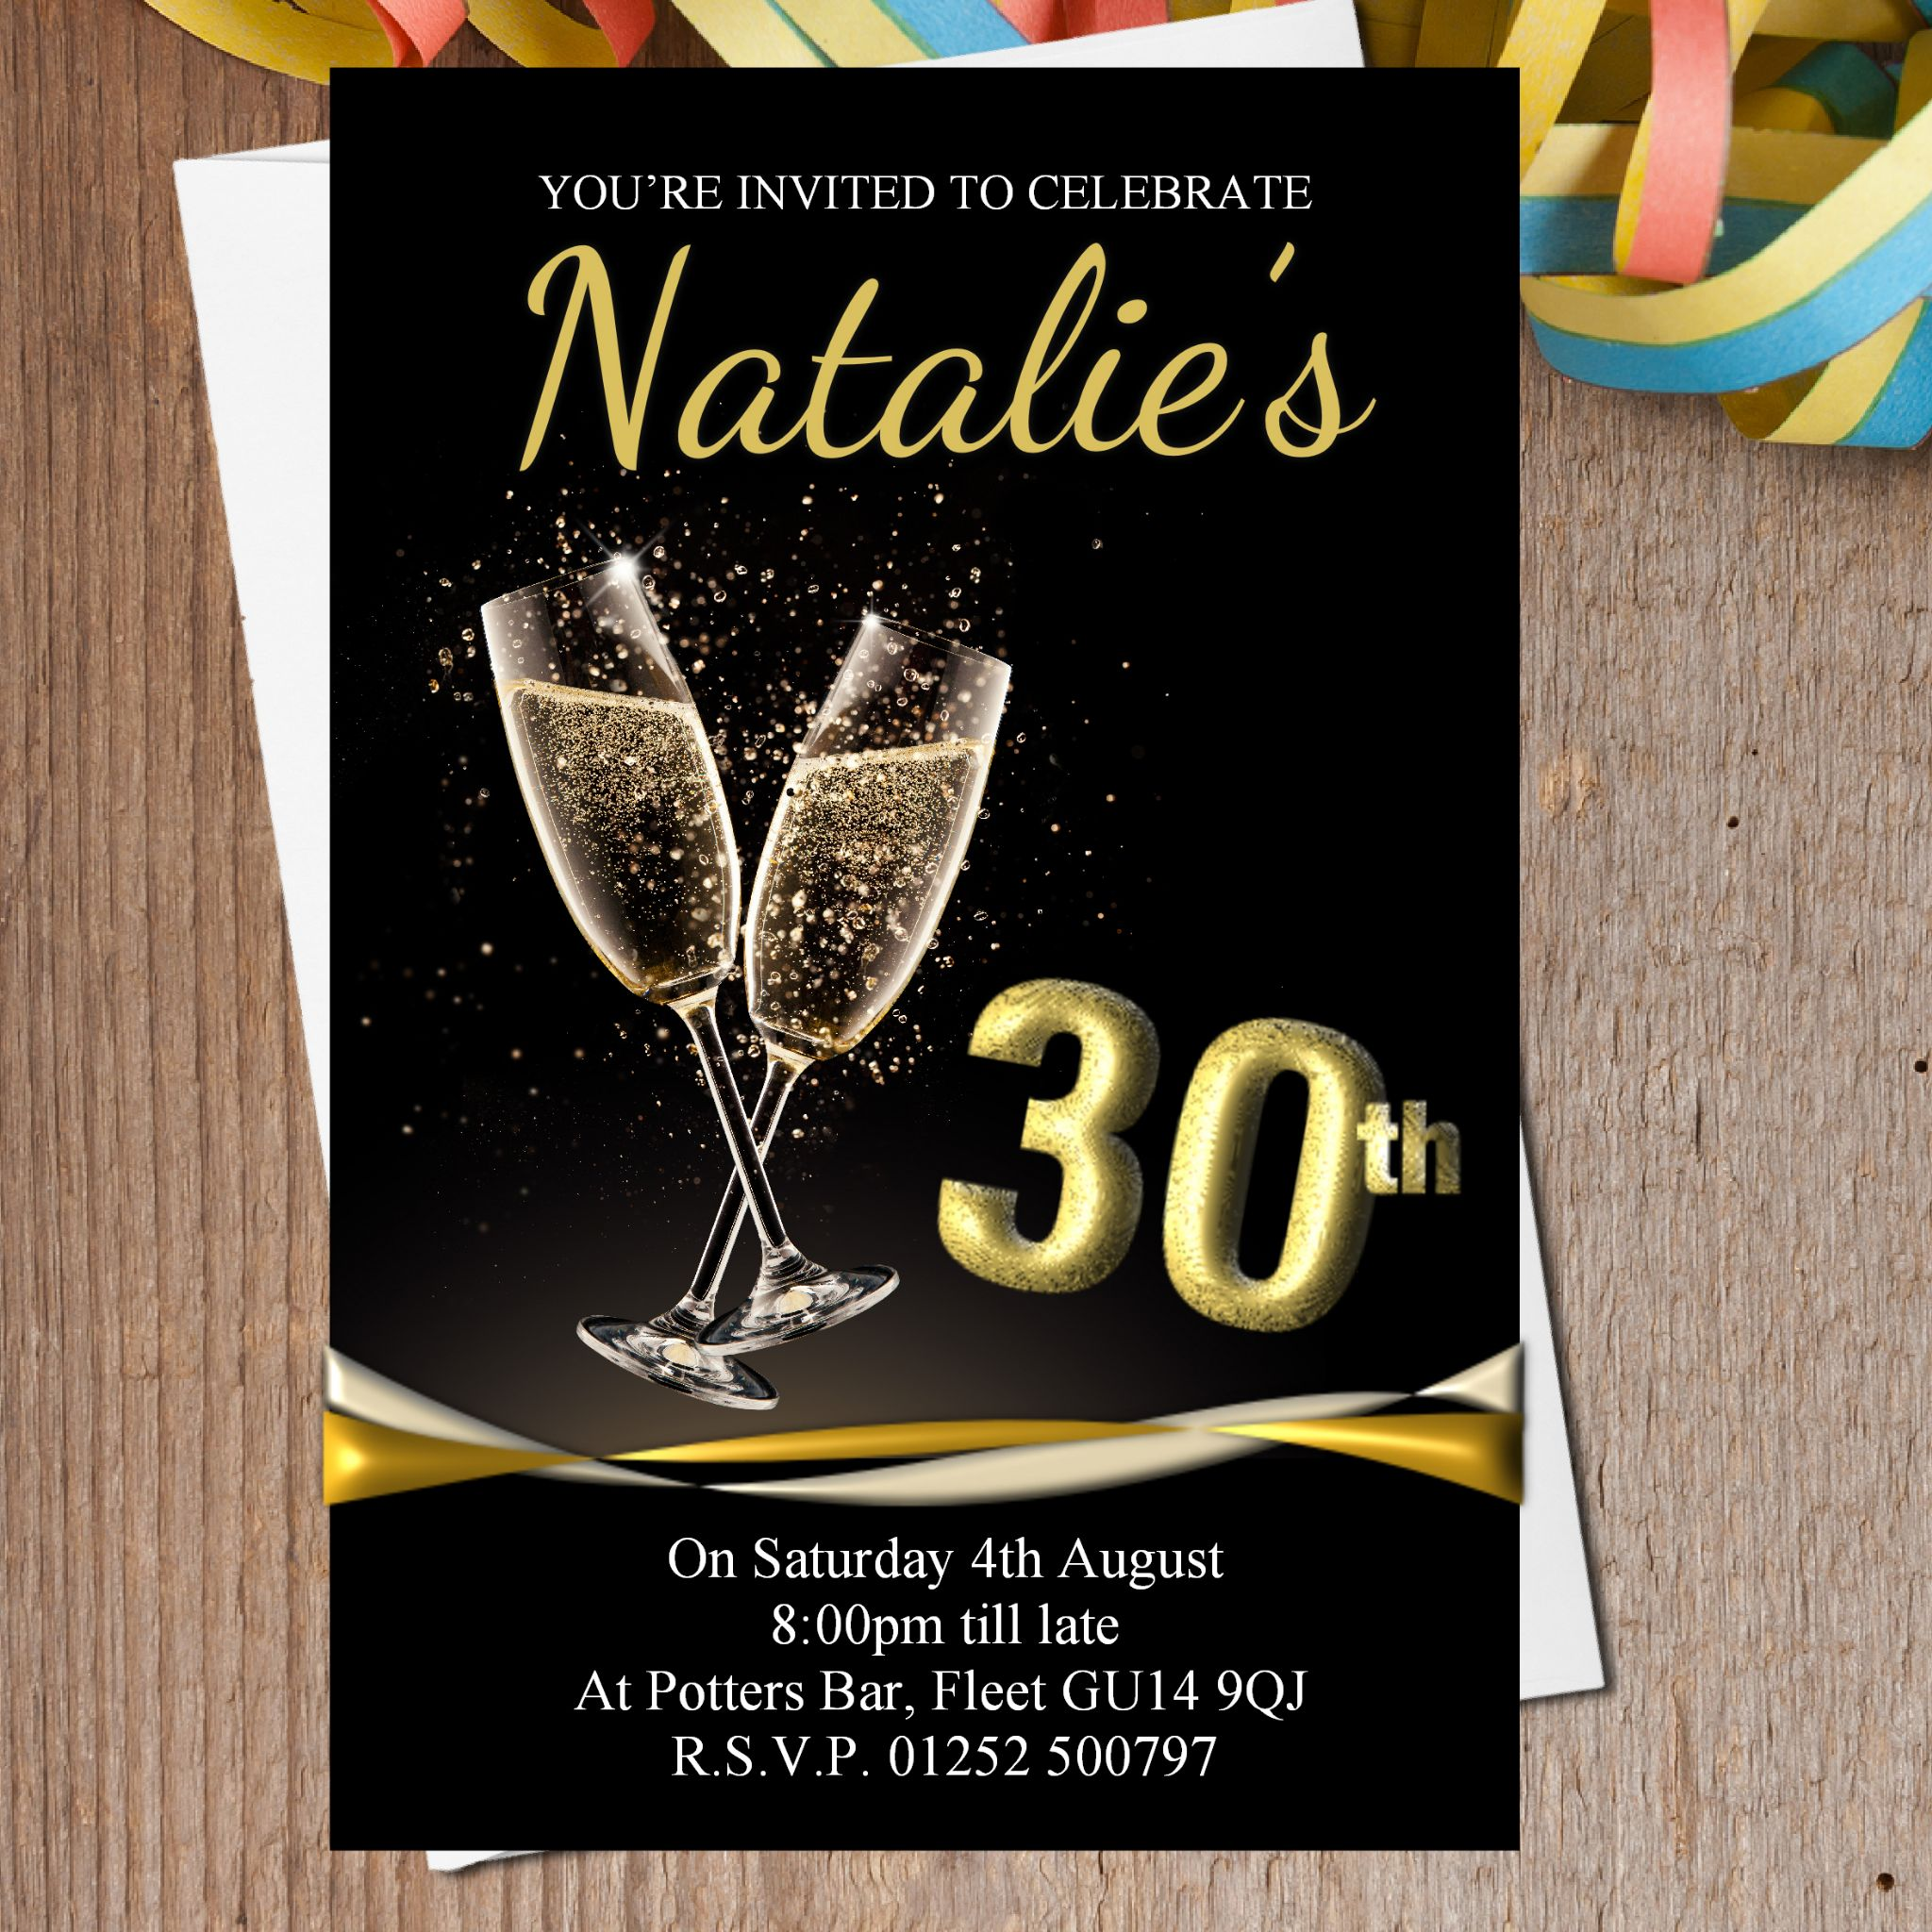 10 Personalised Black Gold Champagne Birthday Party Invitations – Champagne Party Invitations